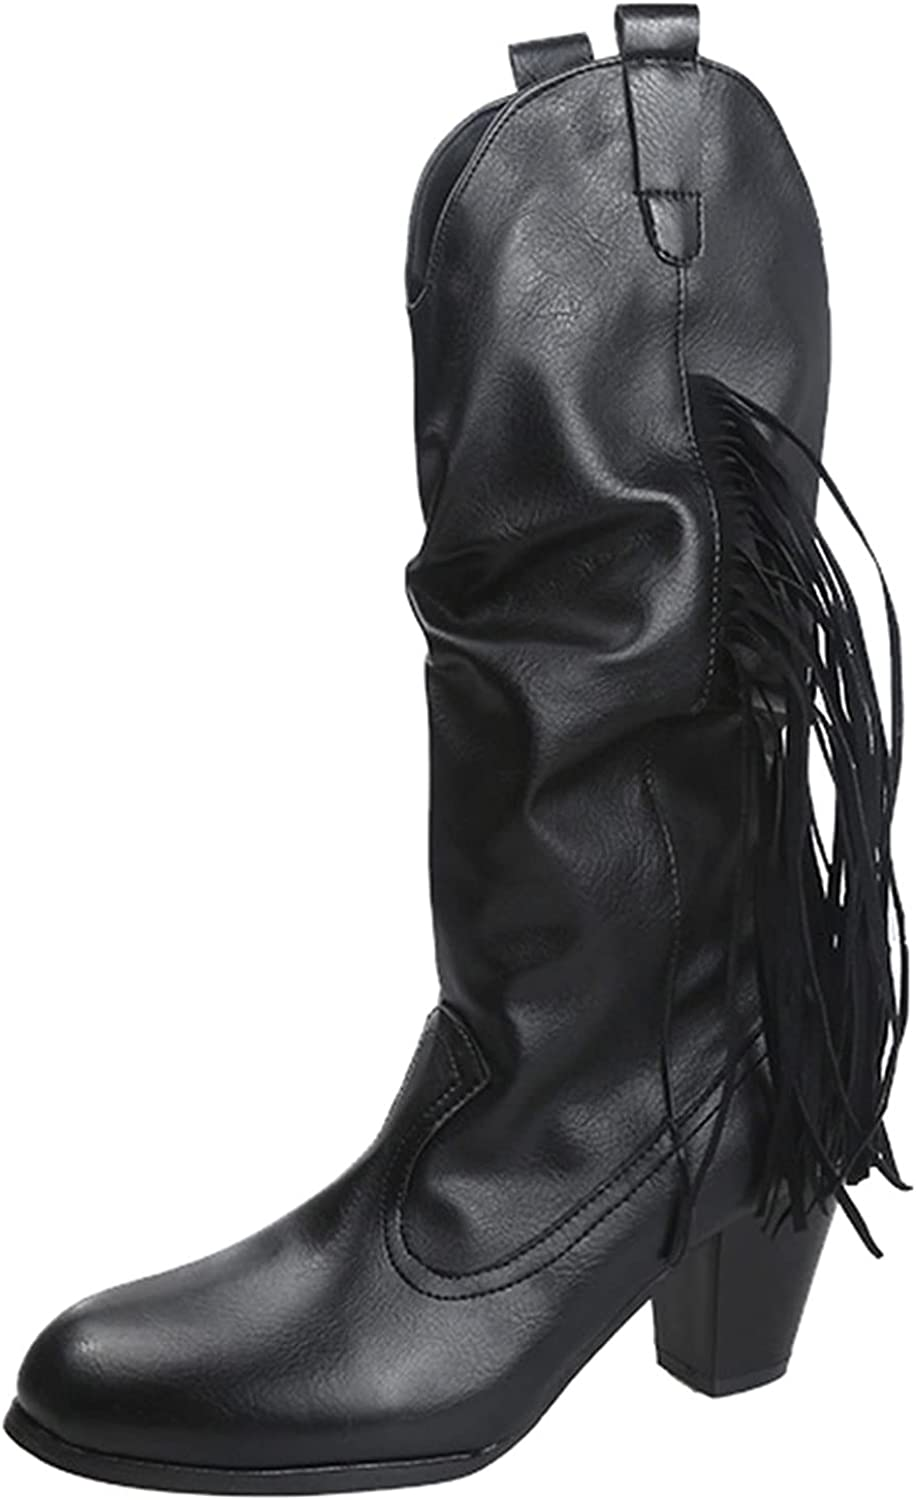 USYFAKGH Women's Mid-Up Boots Solid Color Square Heel Zipper Casual Boots